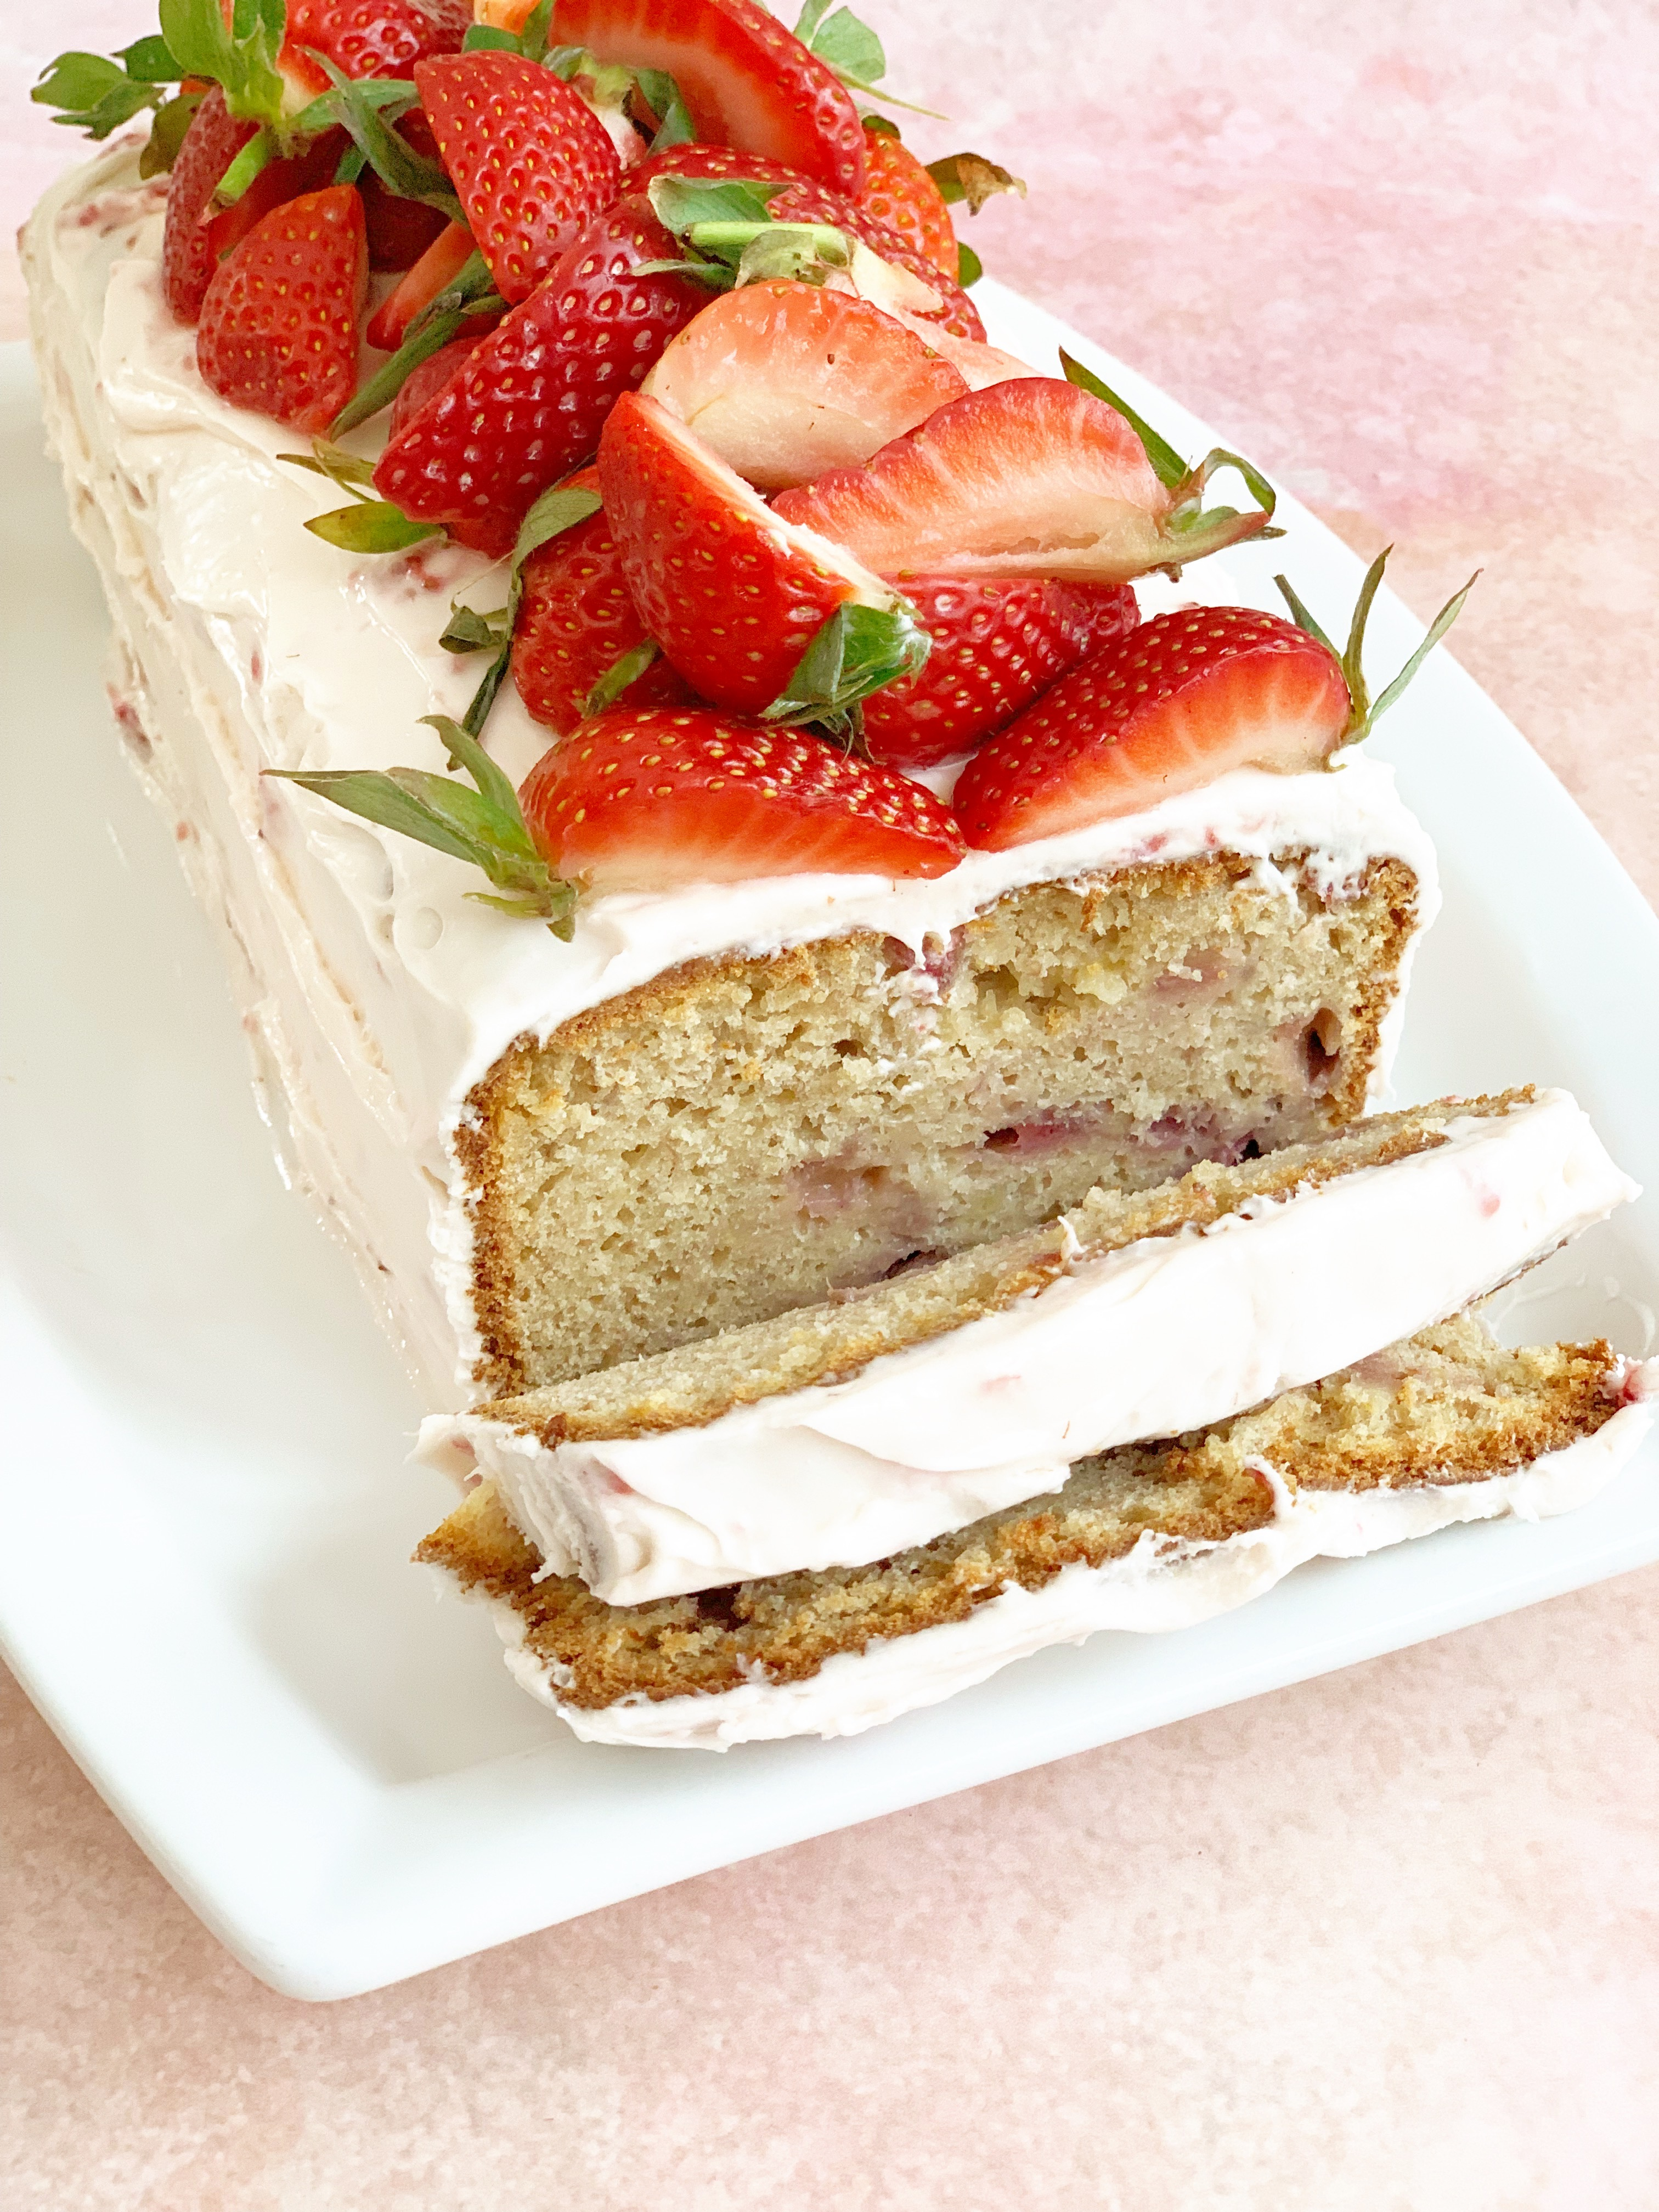 Strawberry bread with cream cheese frosting and fresh strawberries on top. 2 slices have been made in the end to show the internals of the bread